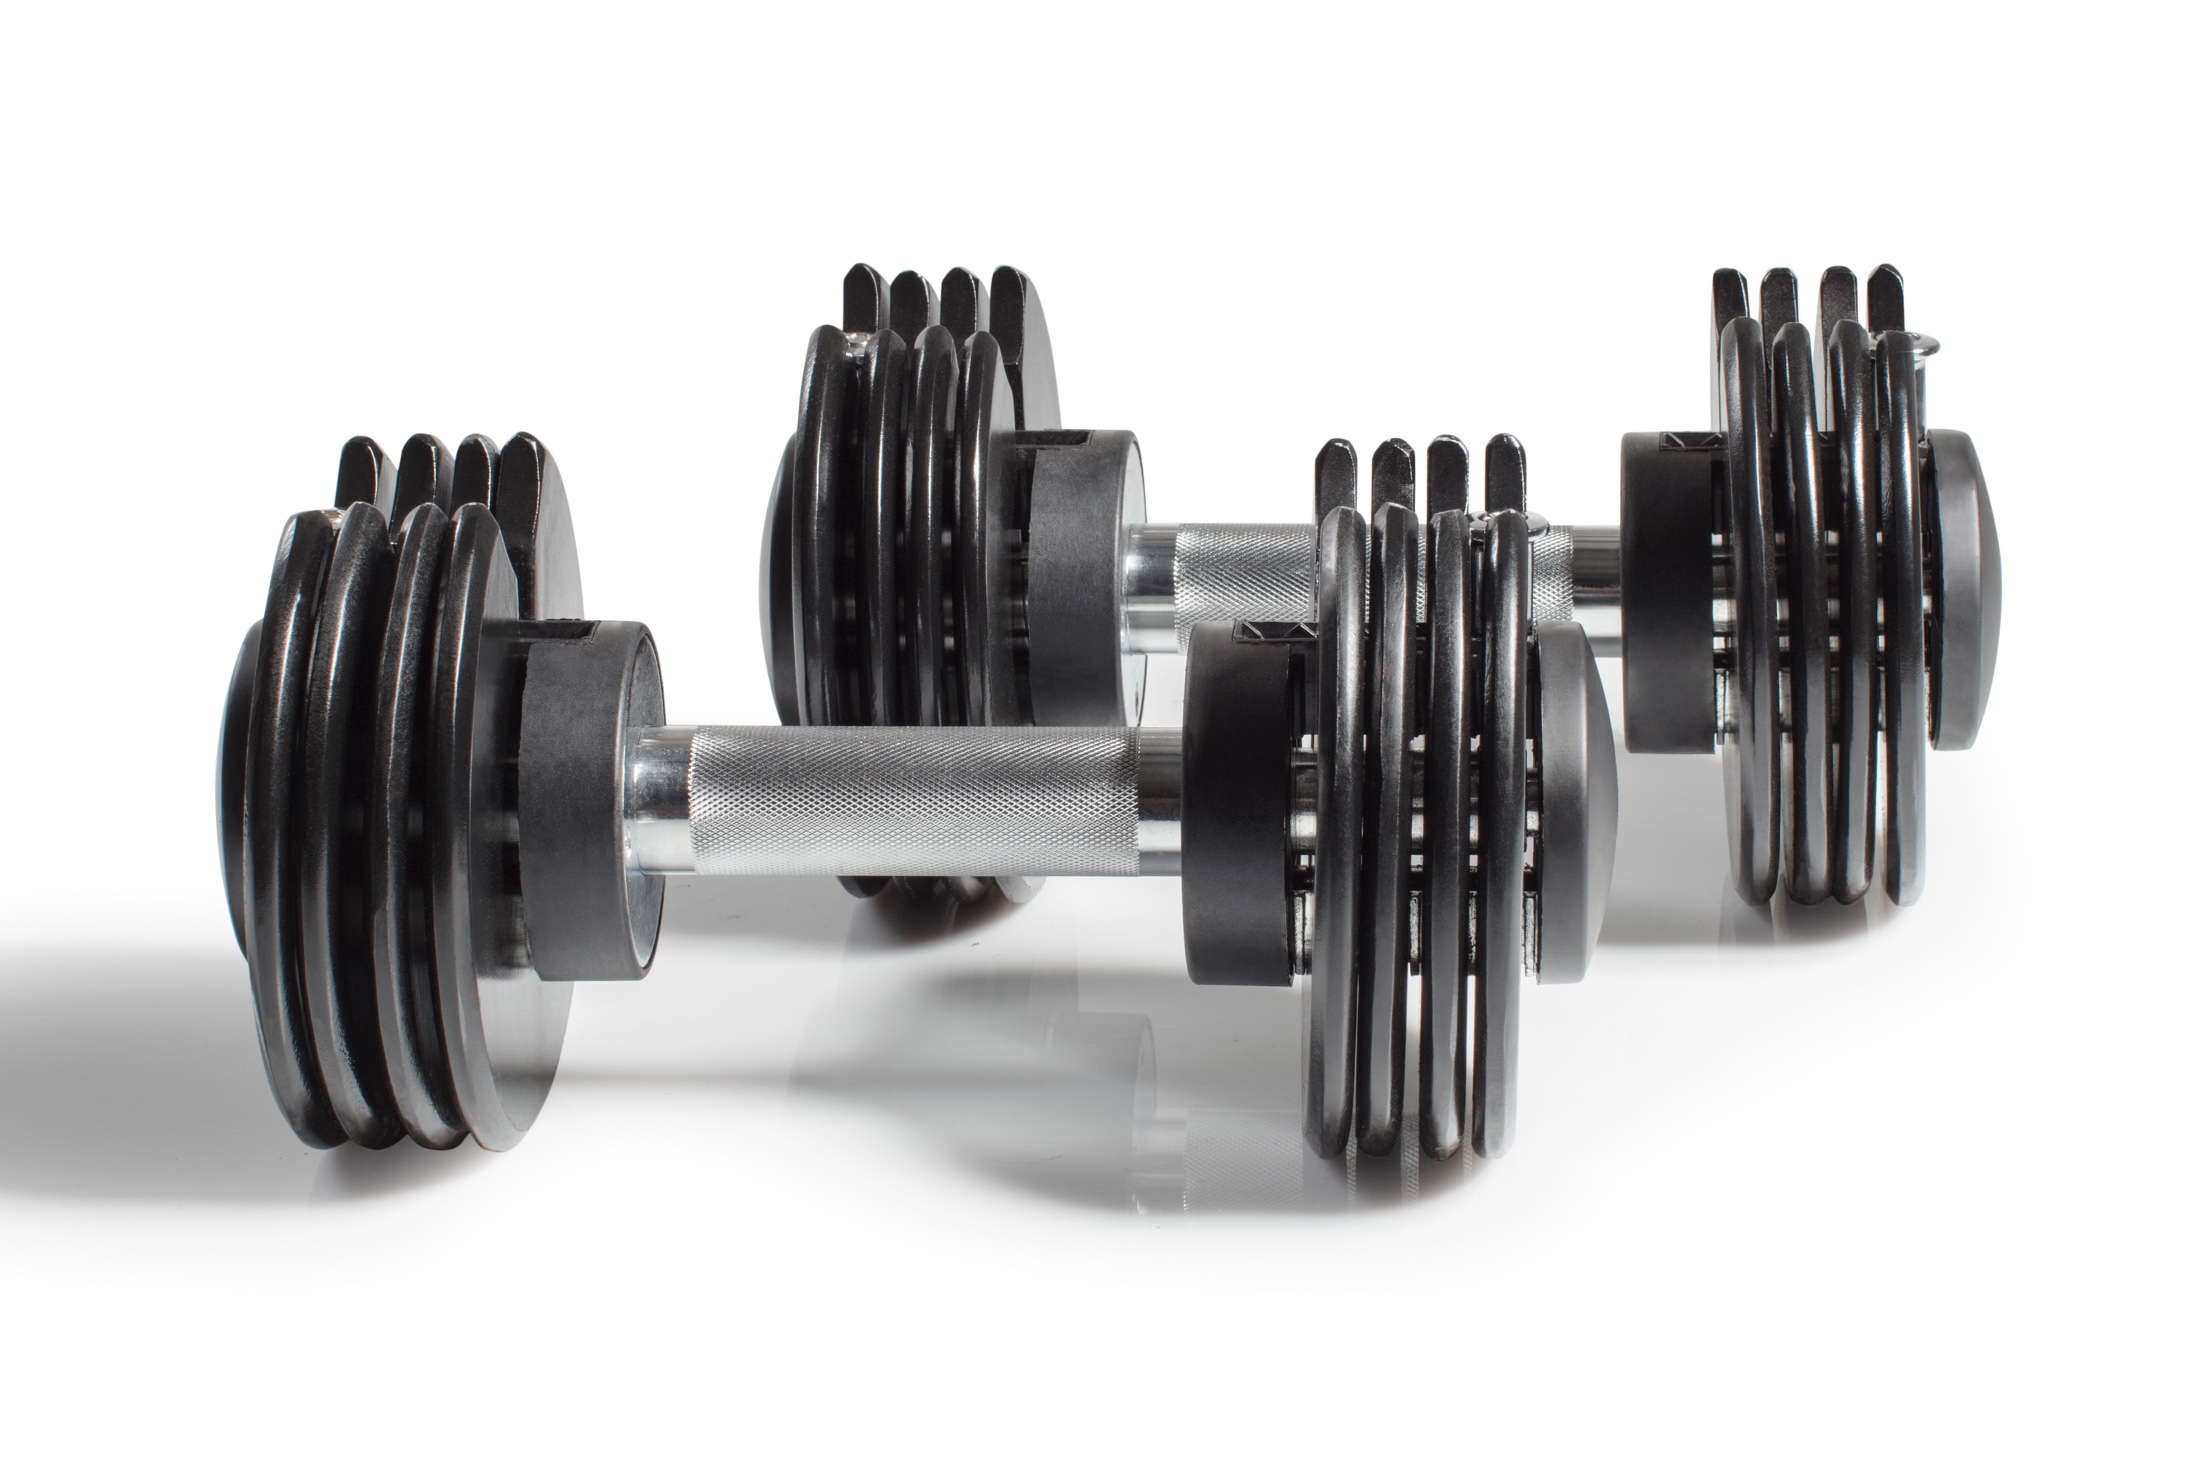 NordicTrack SpeedWeight Adjustable Dumbbells gallery image 3